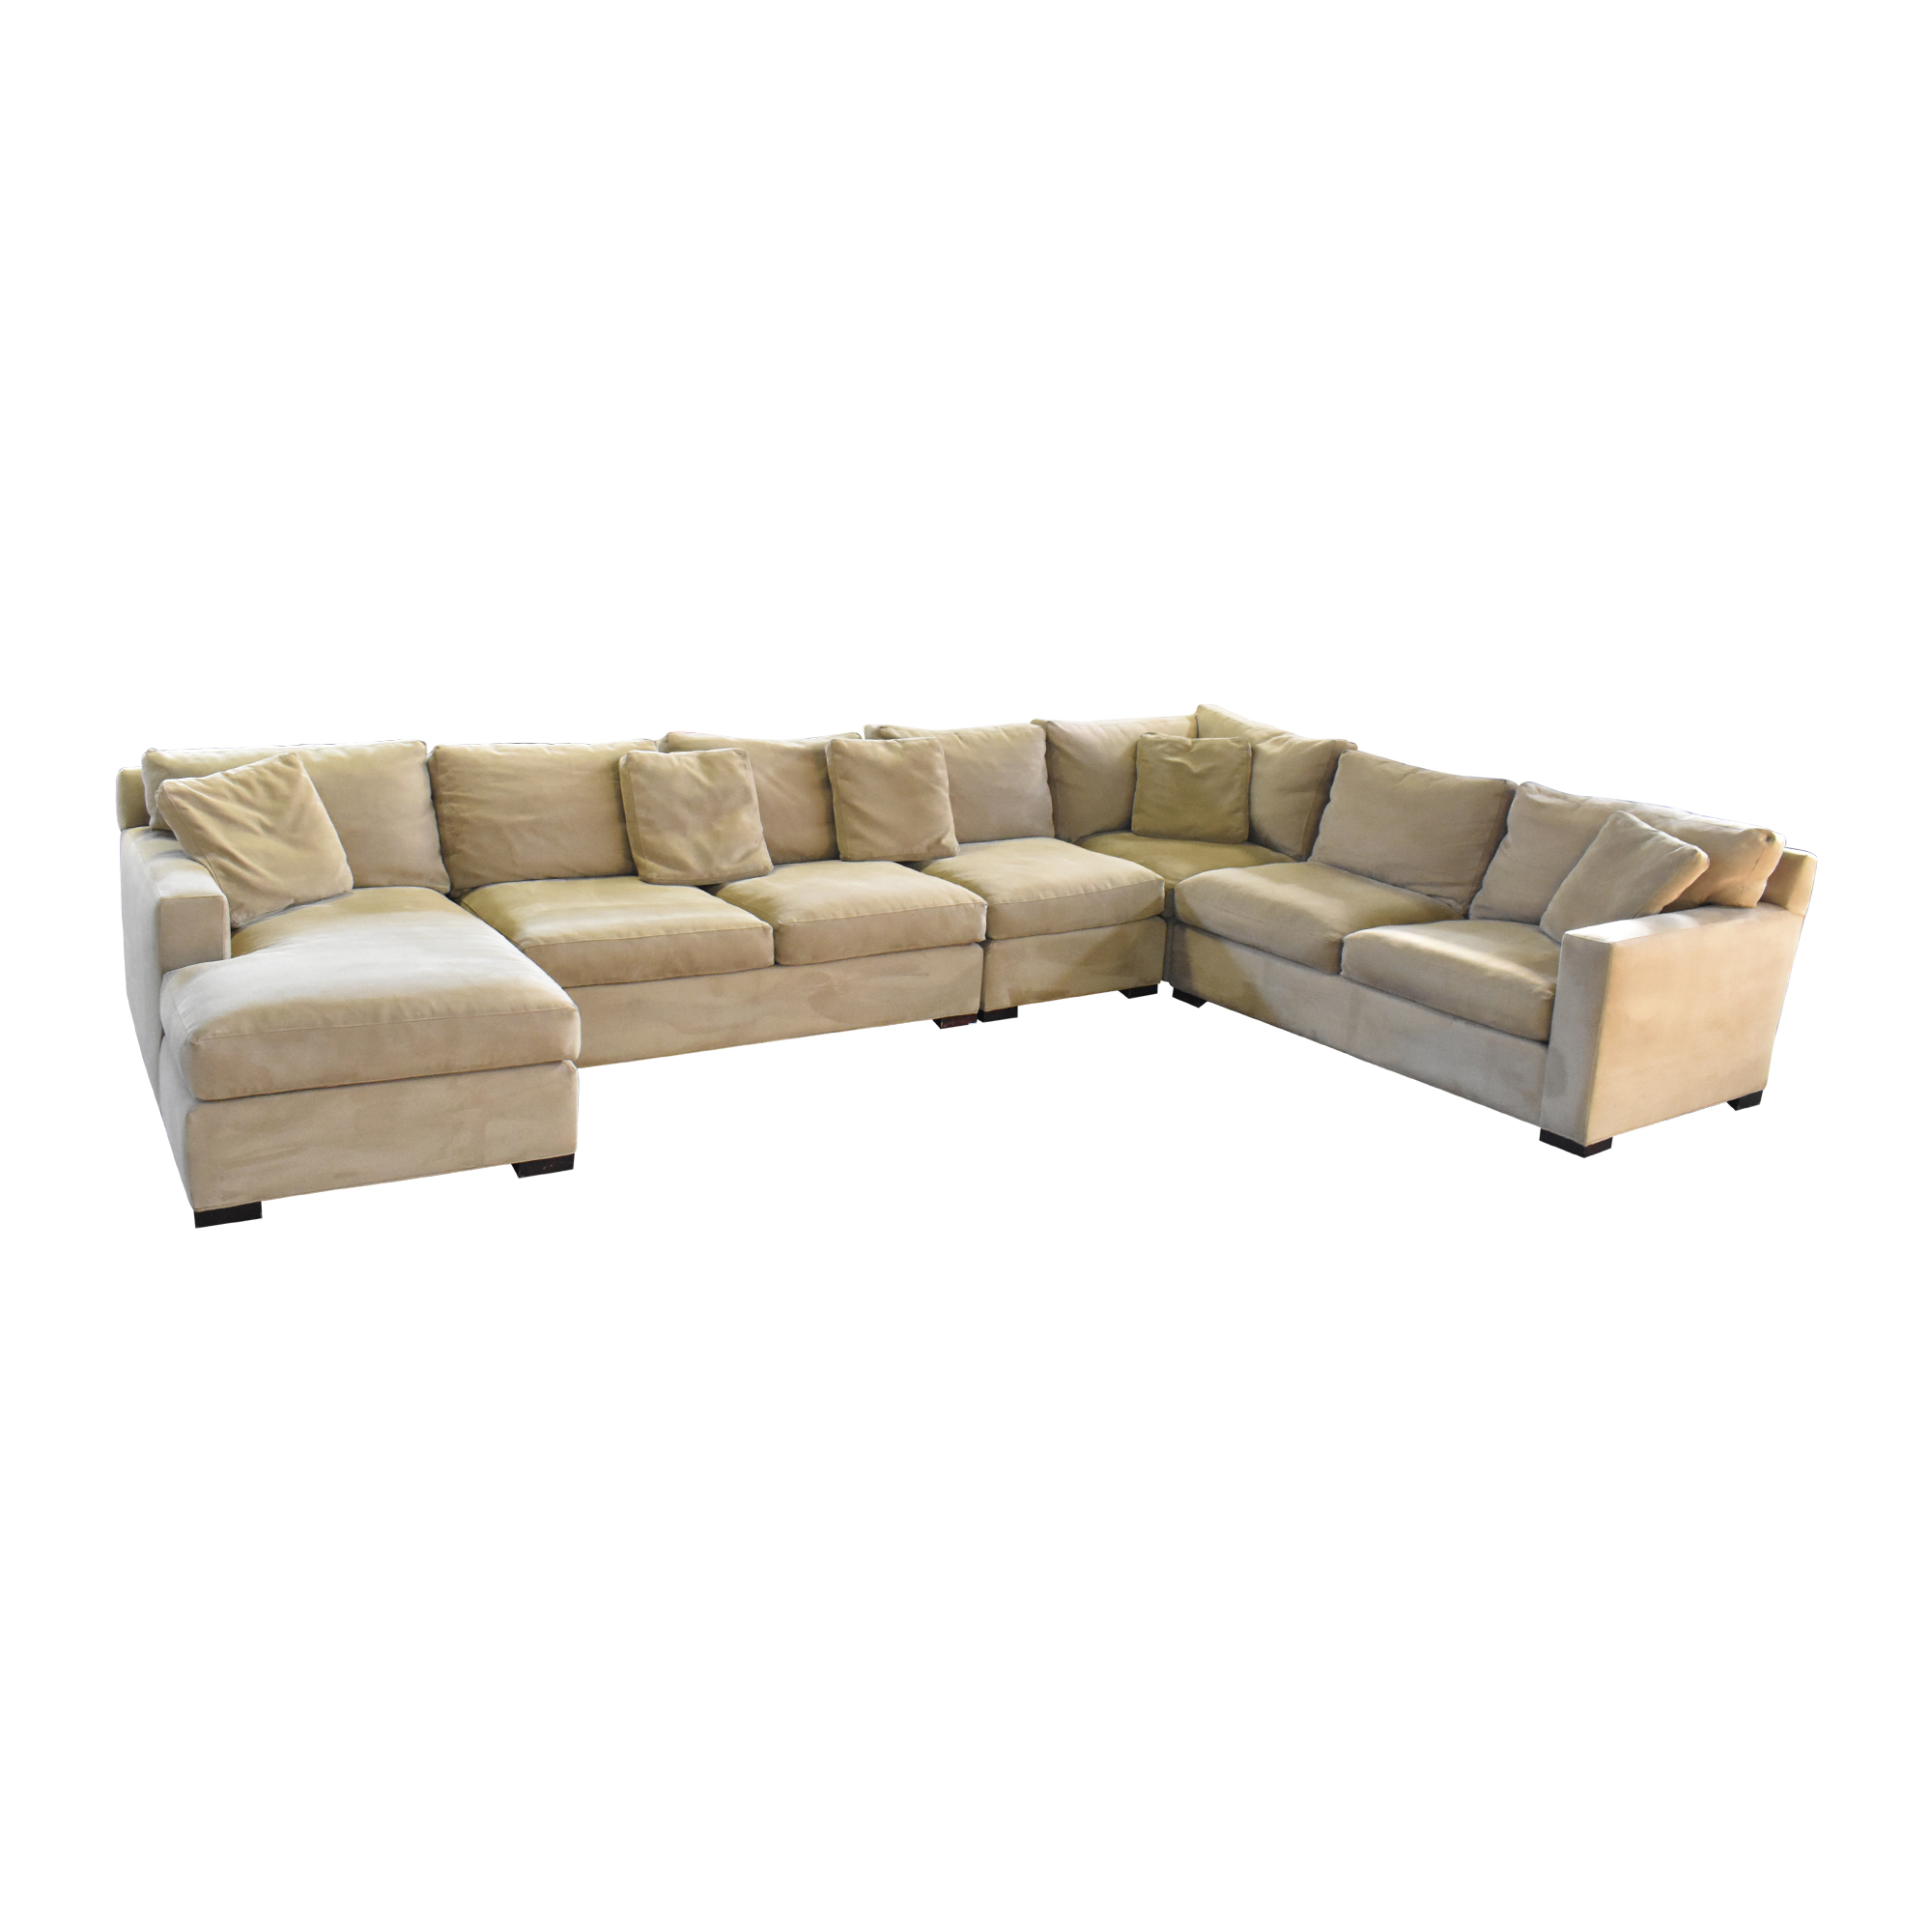 shop Crate & Barrel Axis Sectional Sofa with Chaise Crate & Barrel Sofas